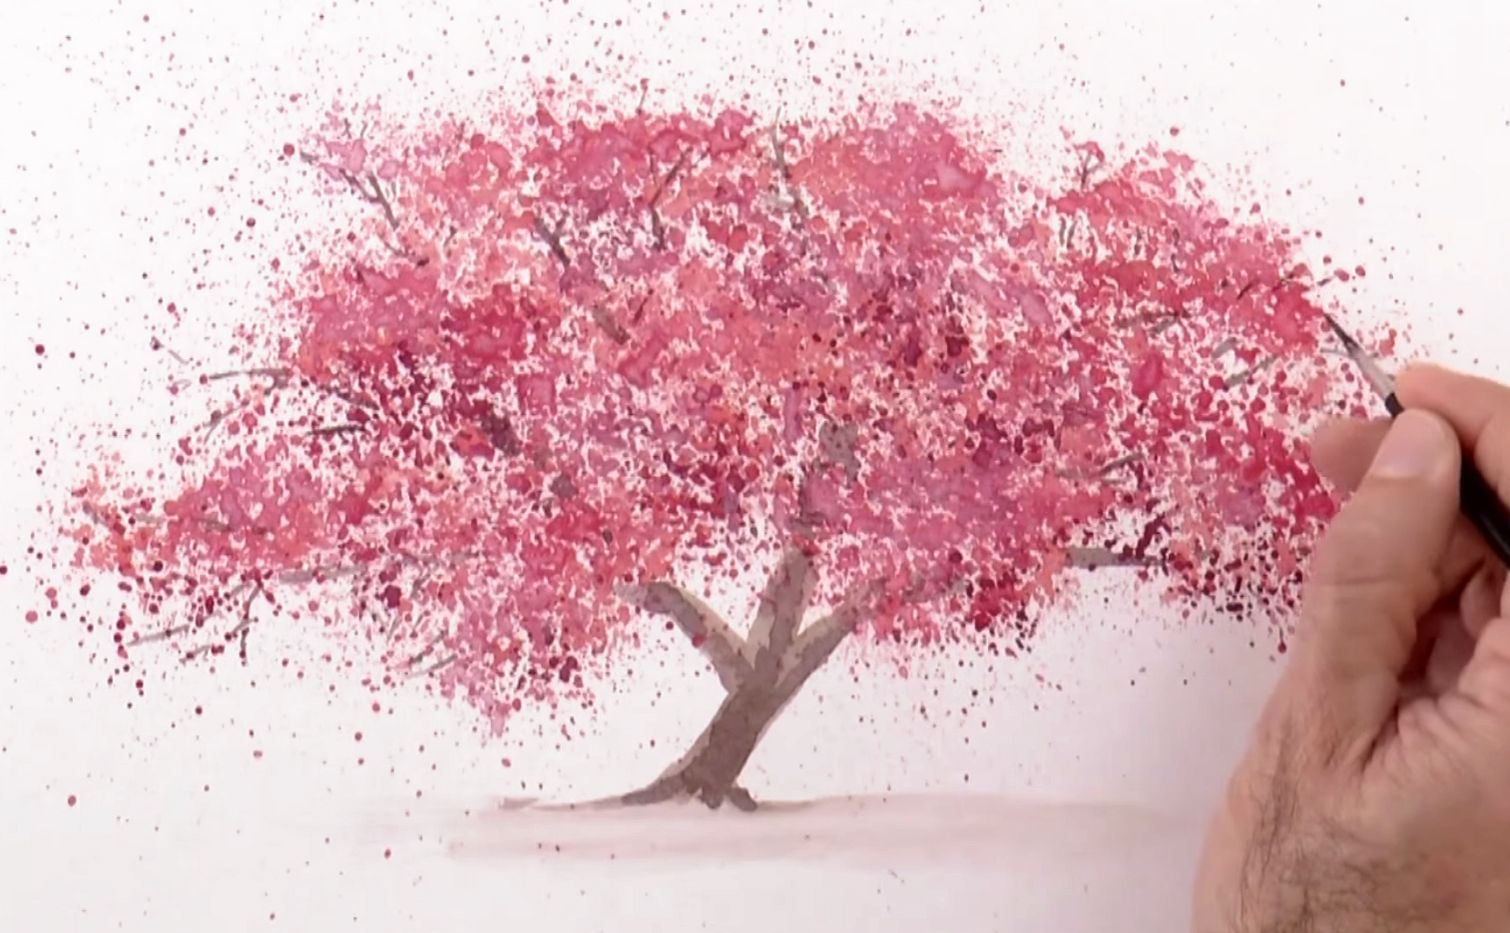 Watercolor Technique To Splatter Cherry Blossom Trees With Images